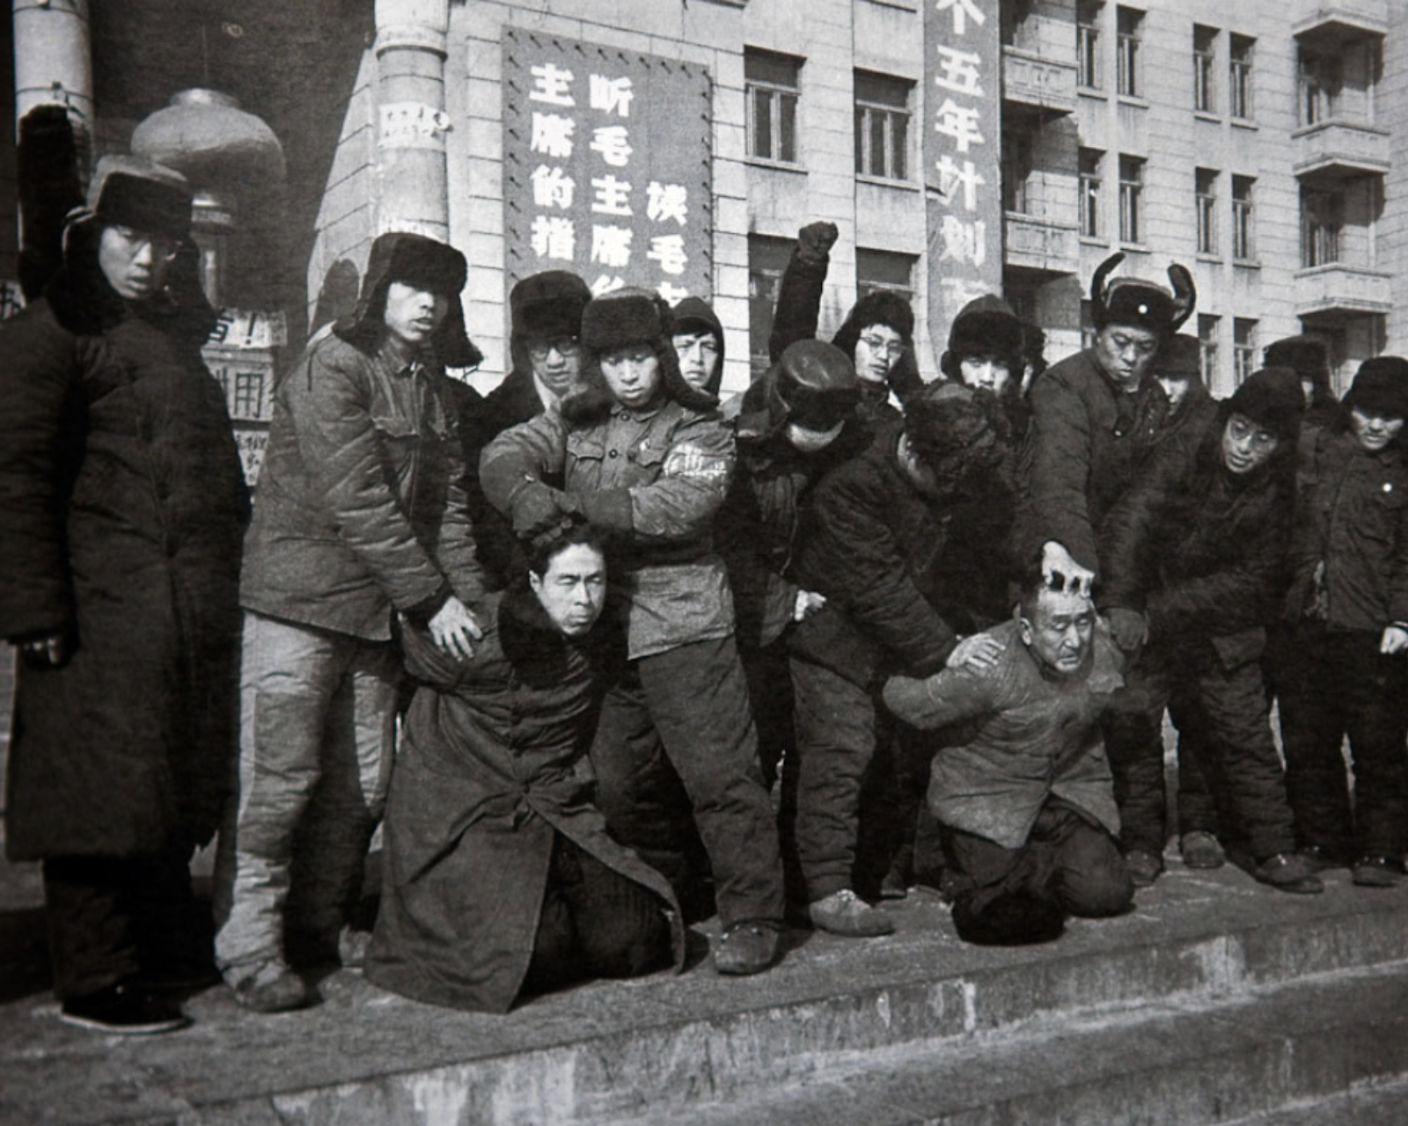 Violent repression of opponents during the Cultural Revolution